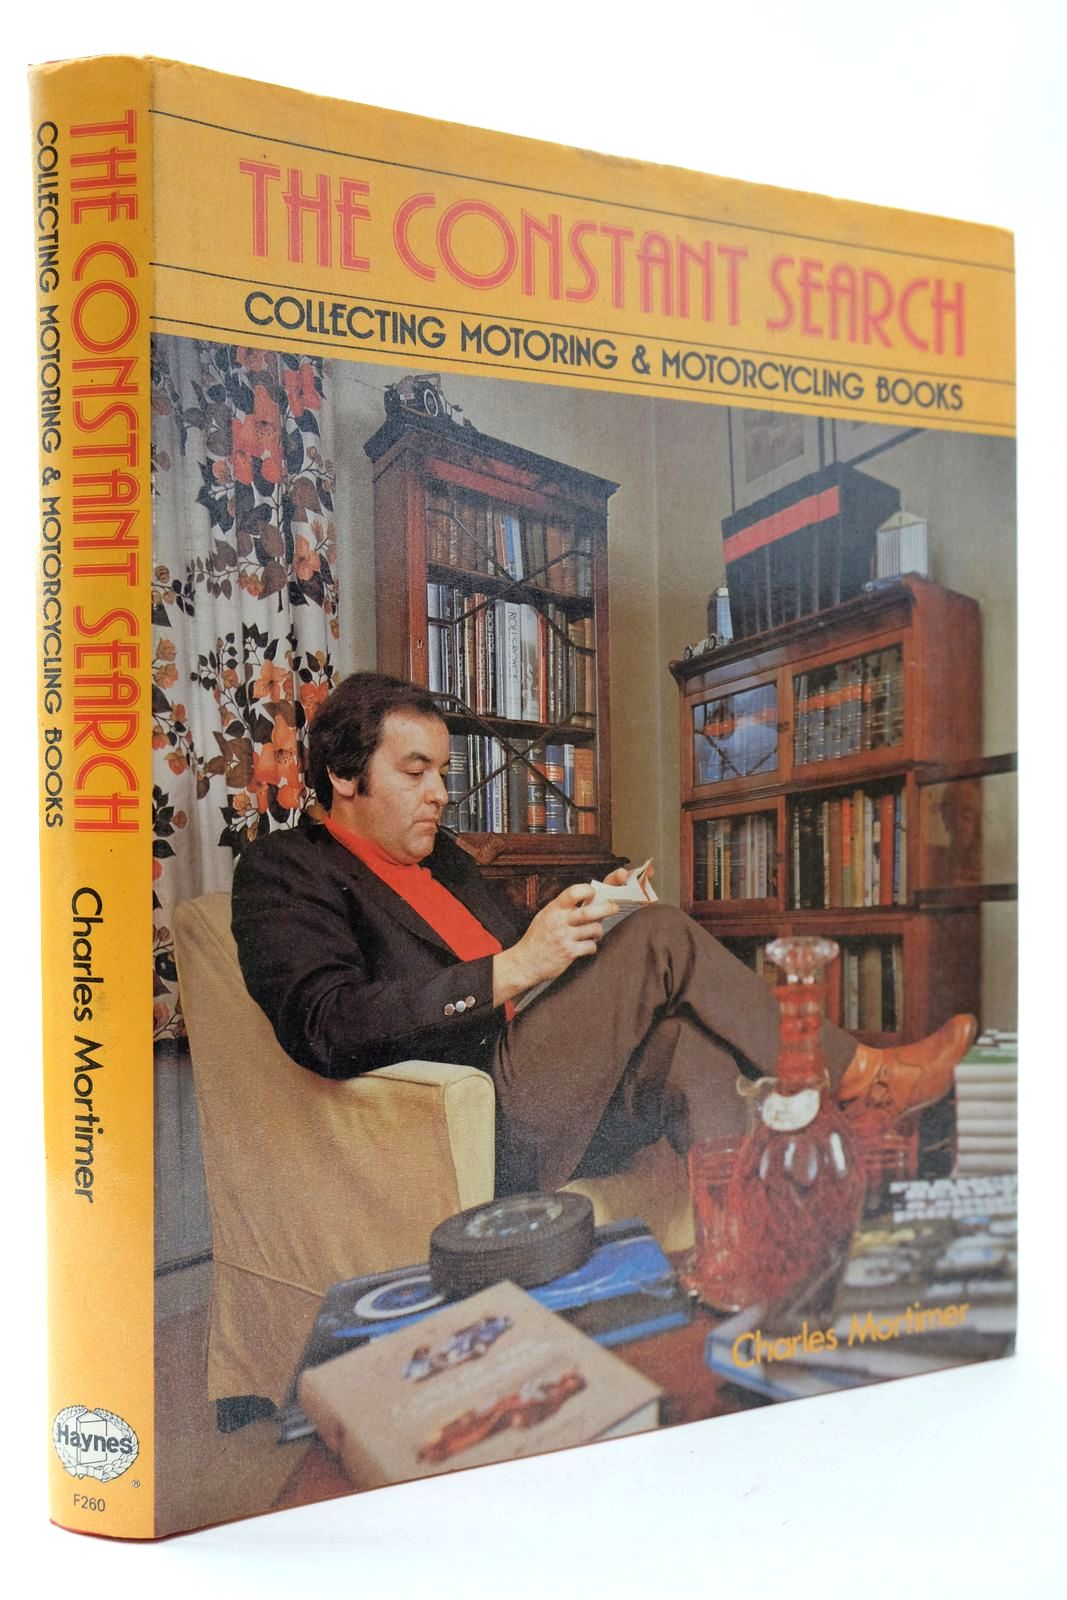 Photo of THE CONSTANT SEARCH written by Mortimer, Charles published by Haynes Publishing Group (STOCK CODE: 2132202)  for sale by Stella & Rose's Books